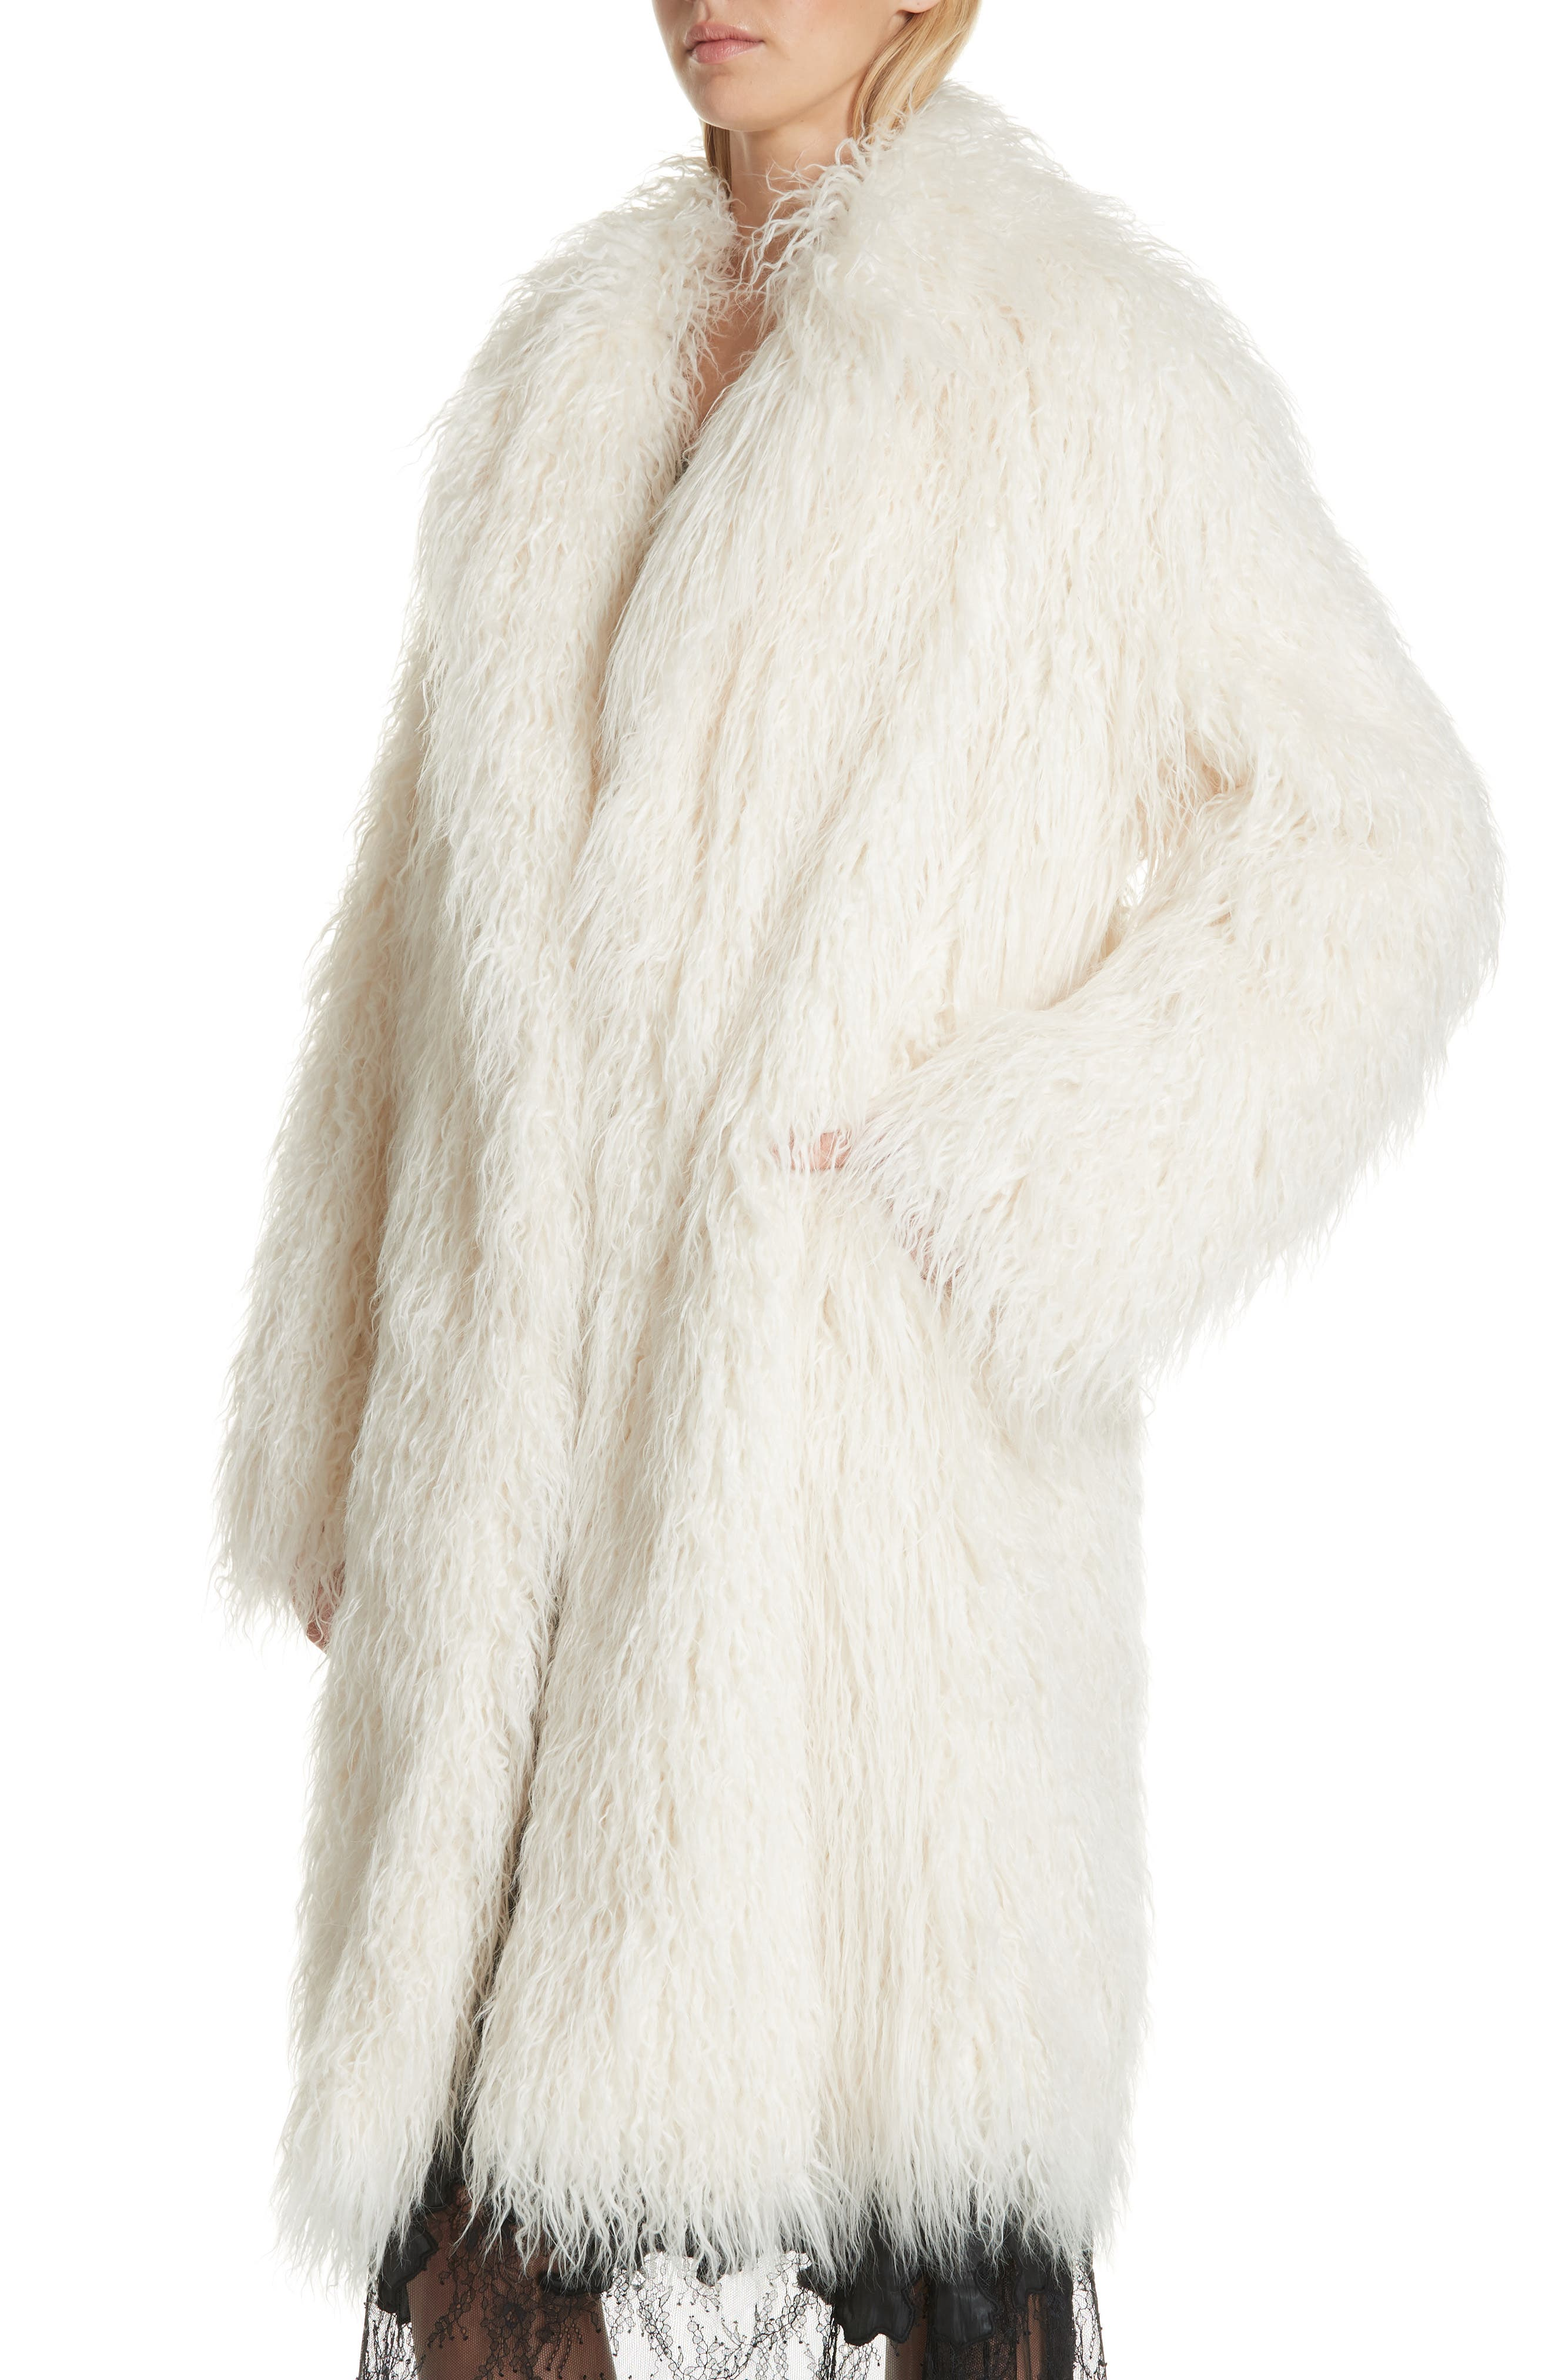 Mongolian Faux Fur Coat,                             Alternate thumbnail 4, color,                             IVORY